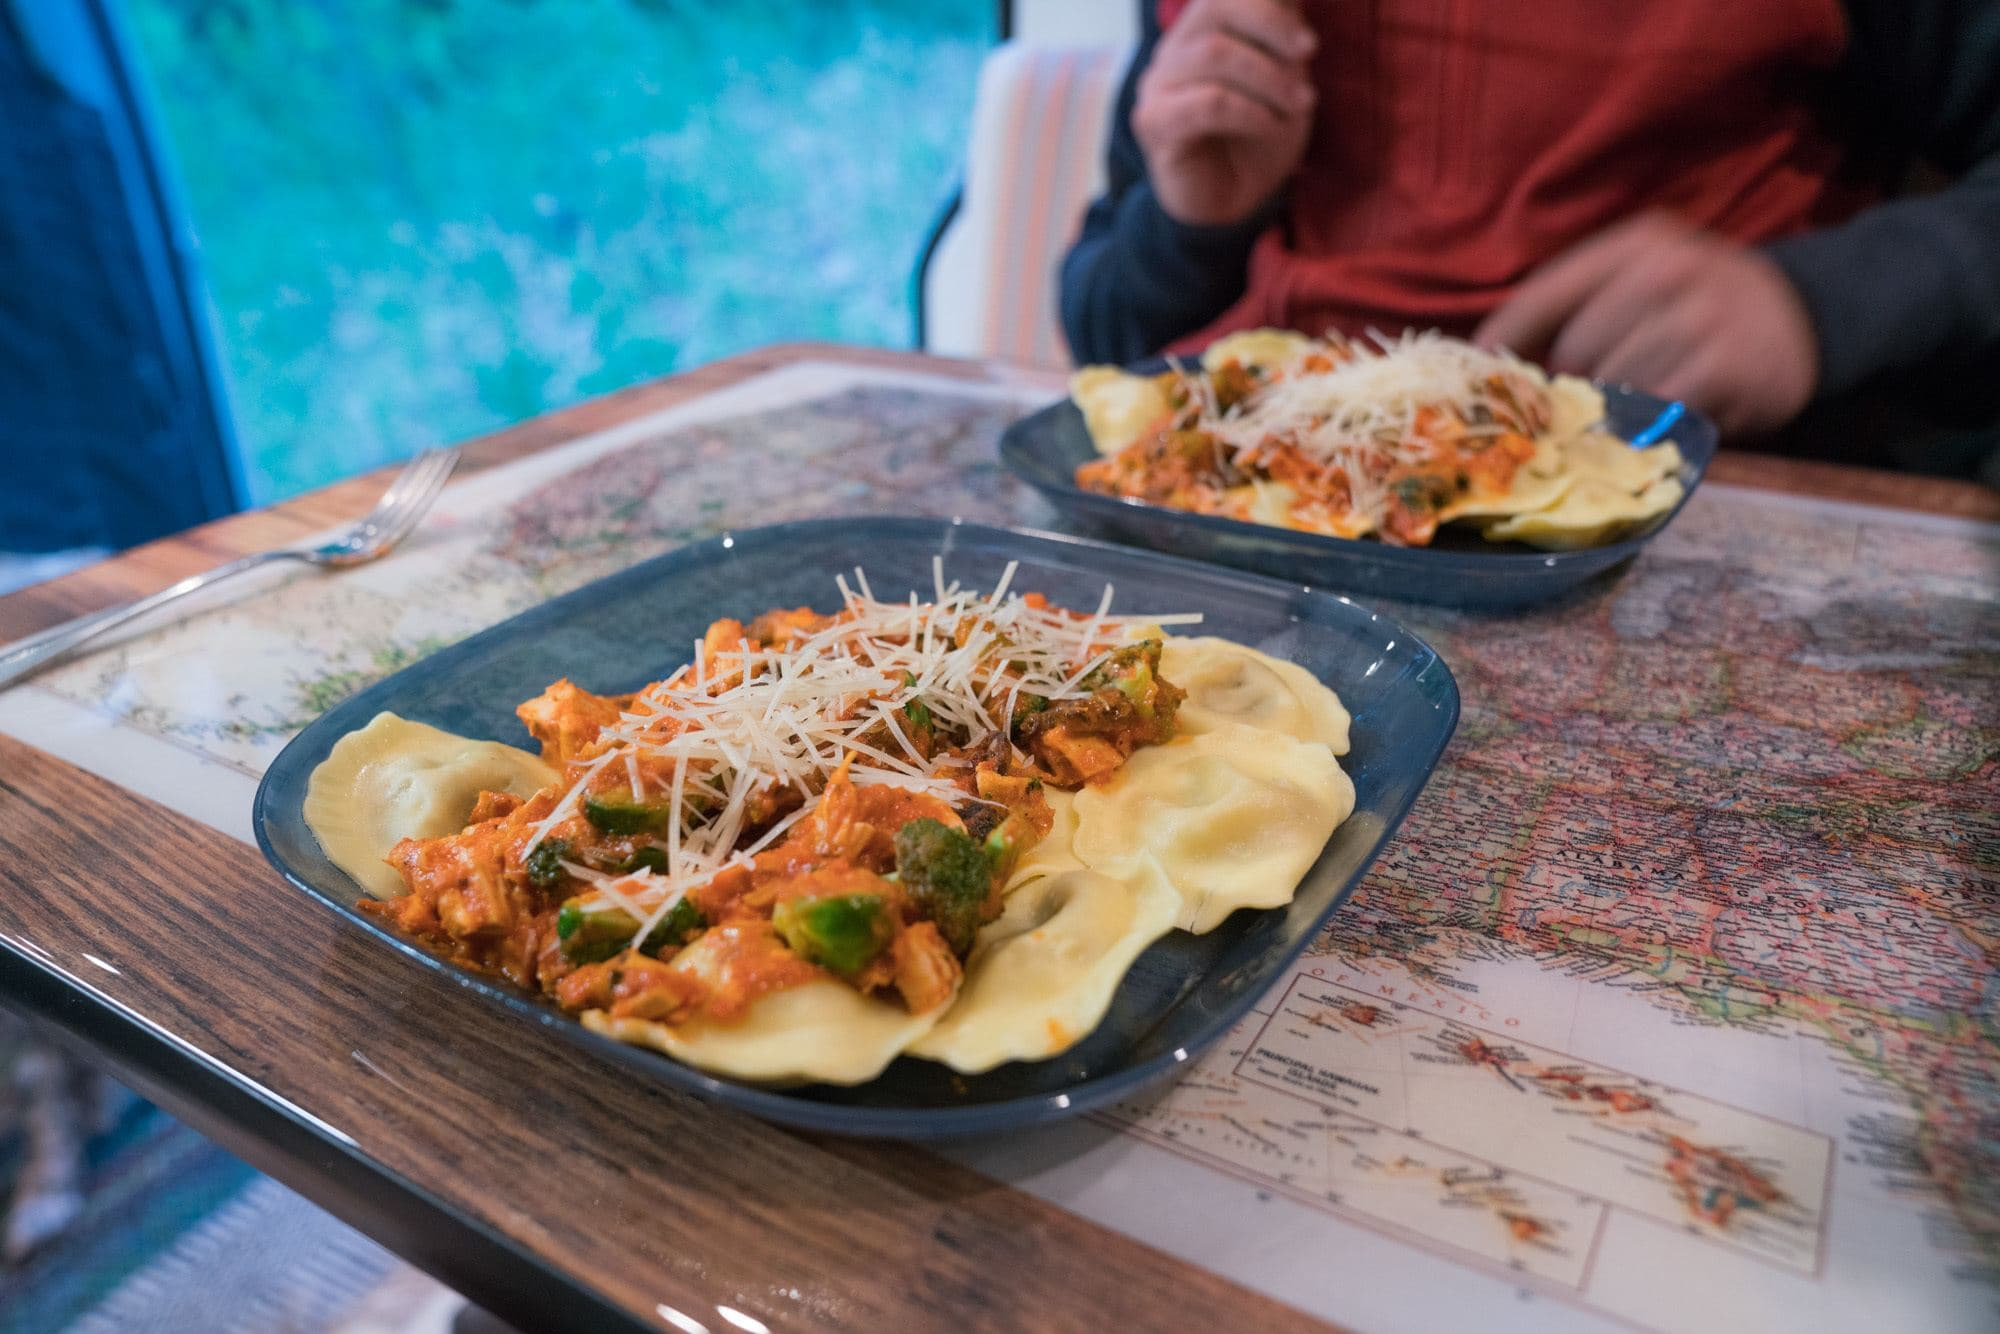 GSI Infinity Plates and Bowls are perfect for vanlife